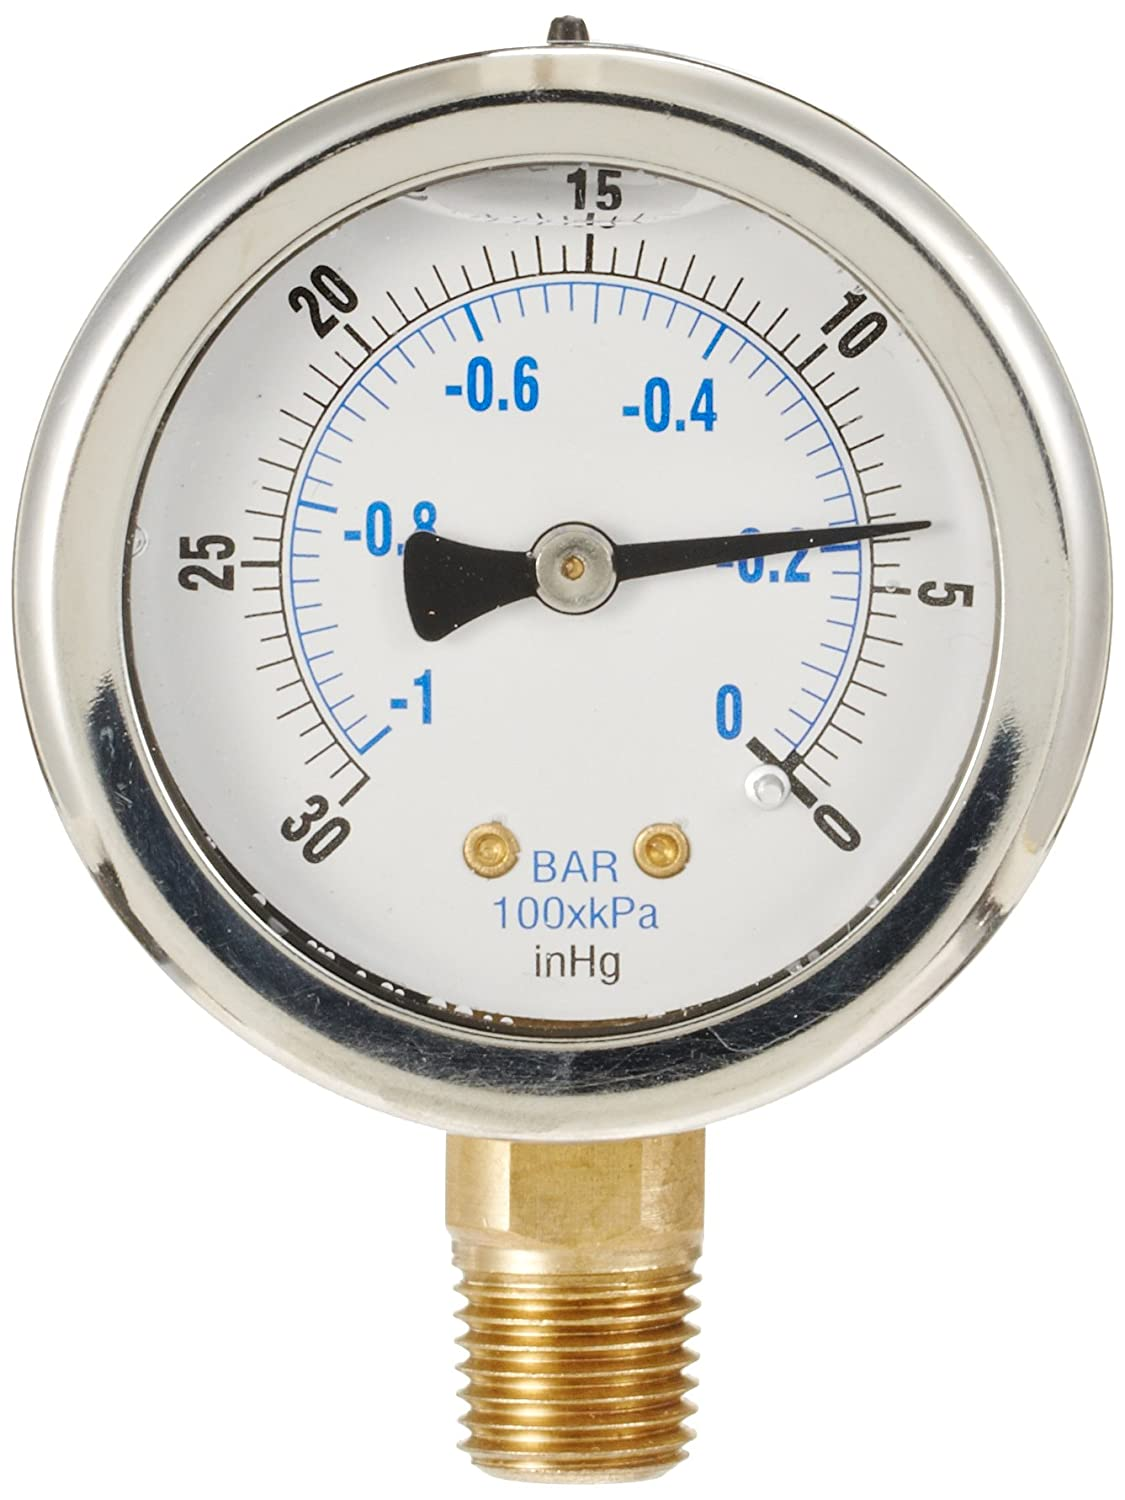 PIC Gauge 201L 204A 2 Dial 30 0 hg Vacuum psi Range 1 4 Male NPT Connection Size Bottom Mount Glycerine Filled Pressure Gauge with a Stainless Steel Case Brass Internals Stainless Steel Bezel and Polycarbonate Lens